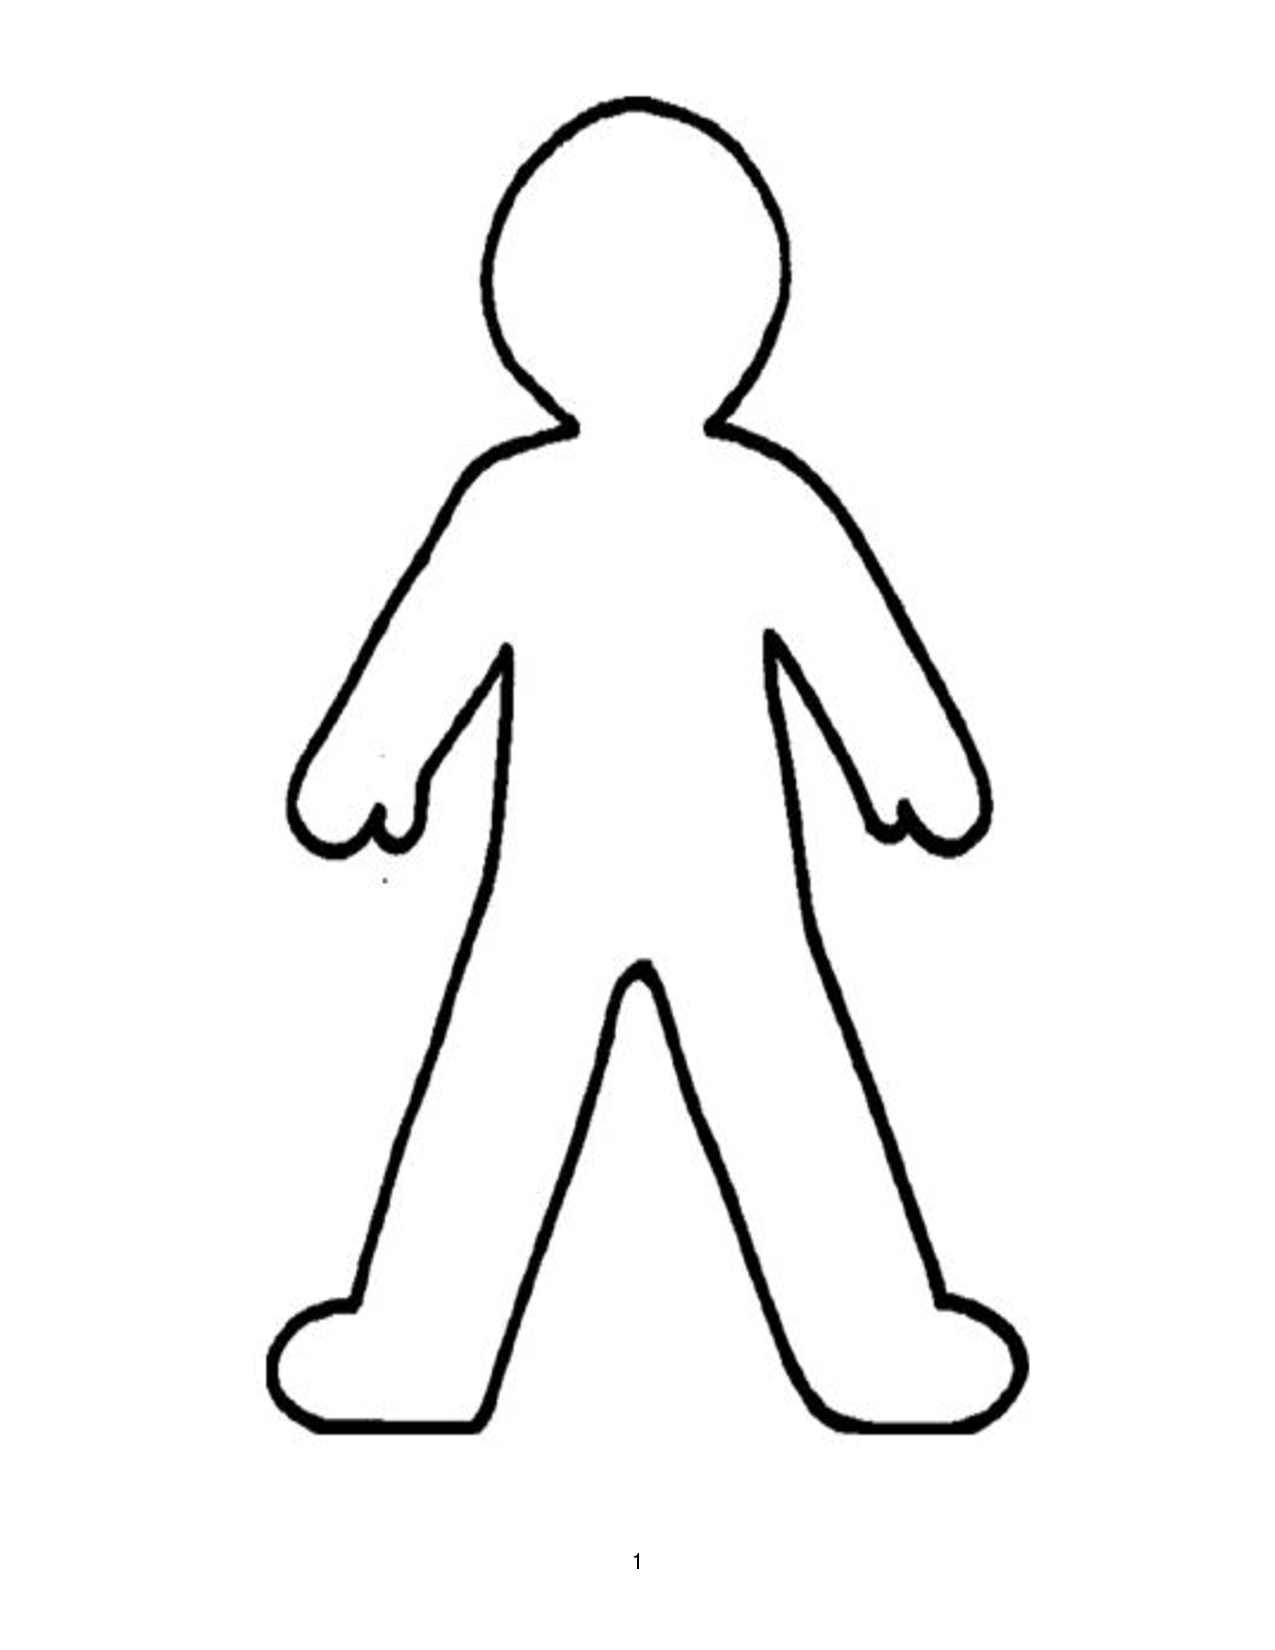 Doll Outline Template - Clipart Best   Printable   Person Outline - Free Printable Human Body Template